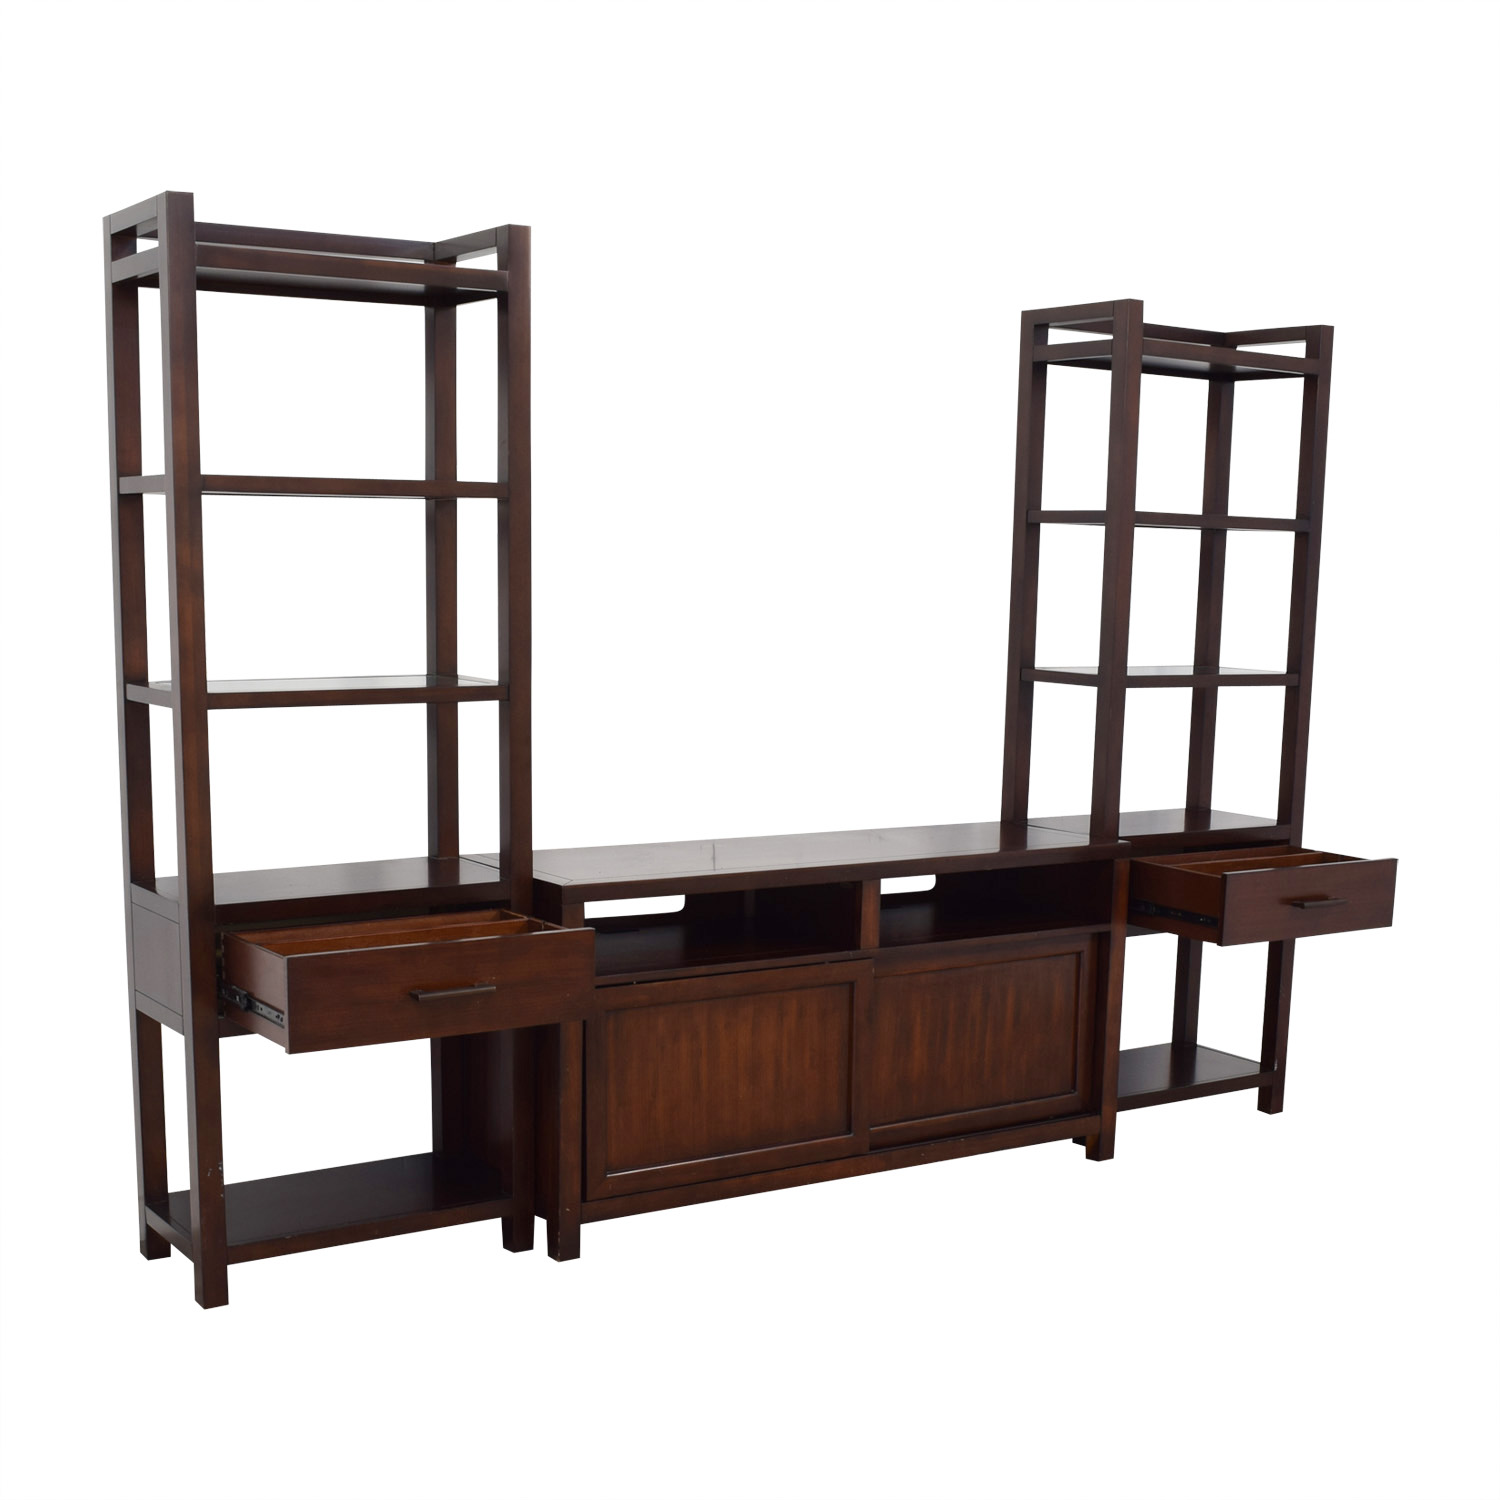 Crate & Barrel Media Console with Two Media Towers / Media Units